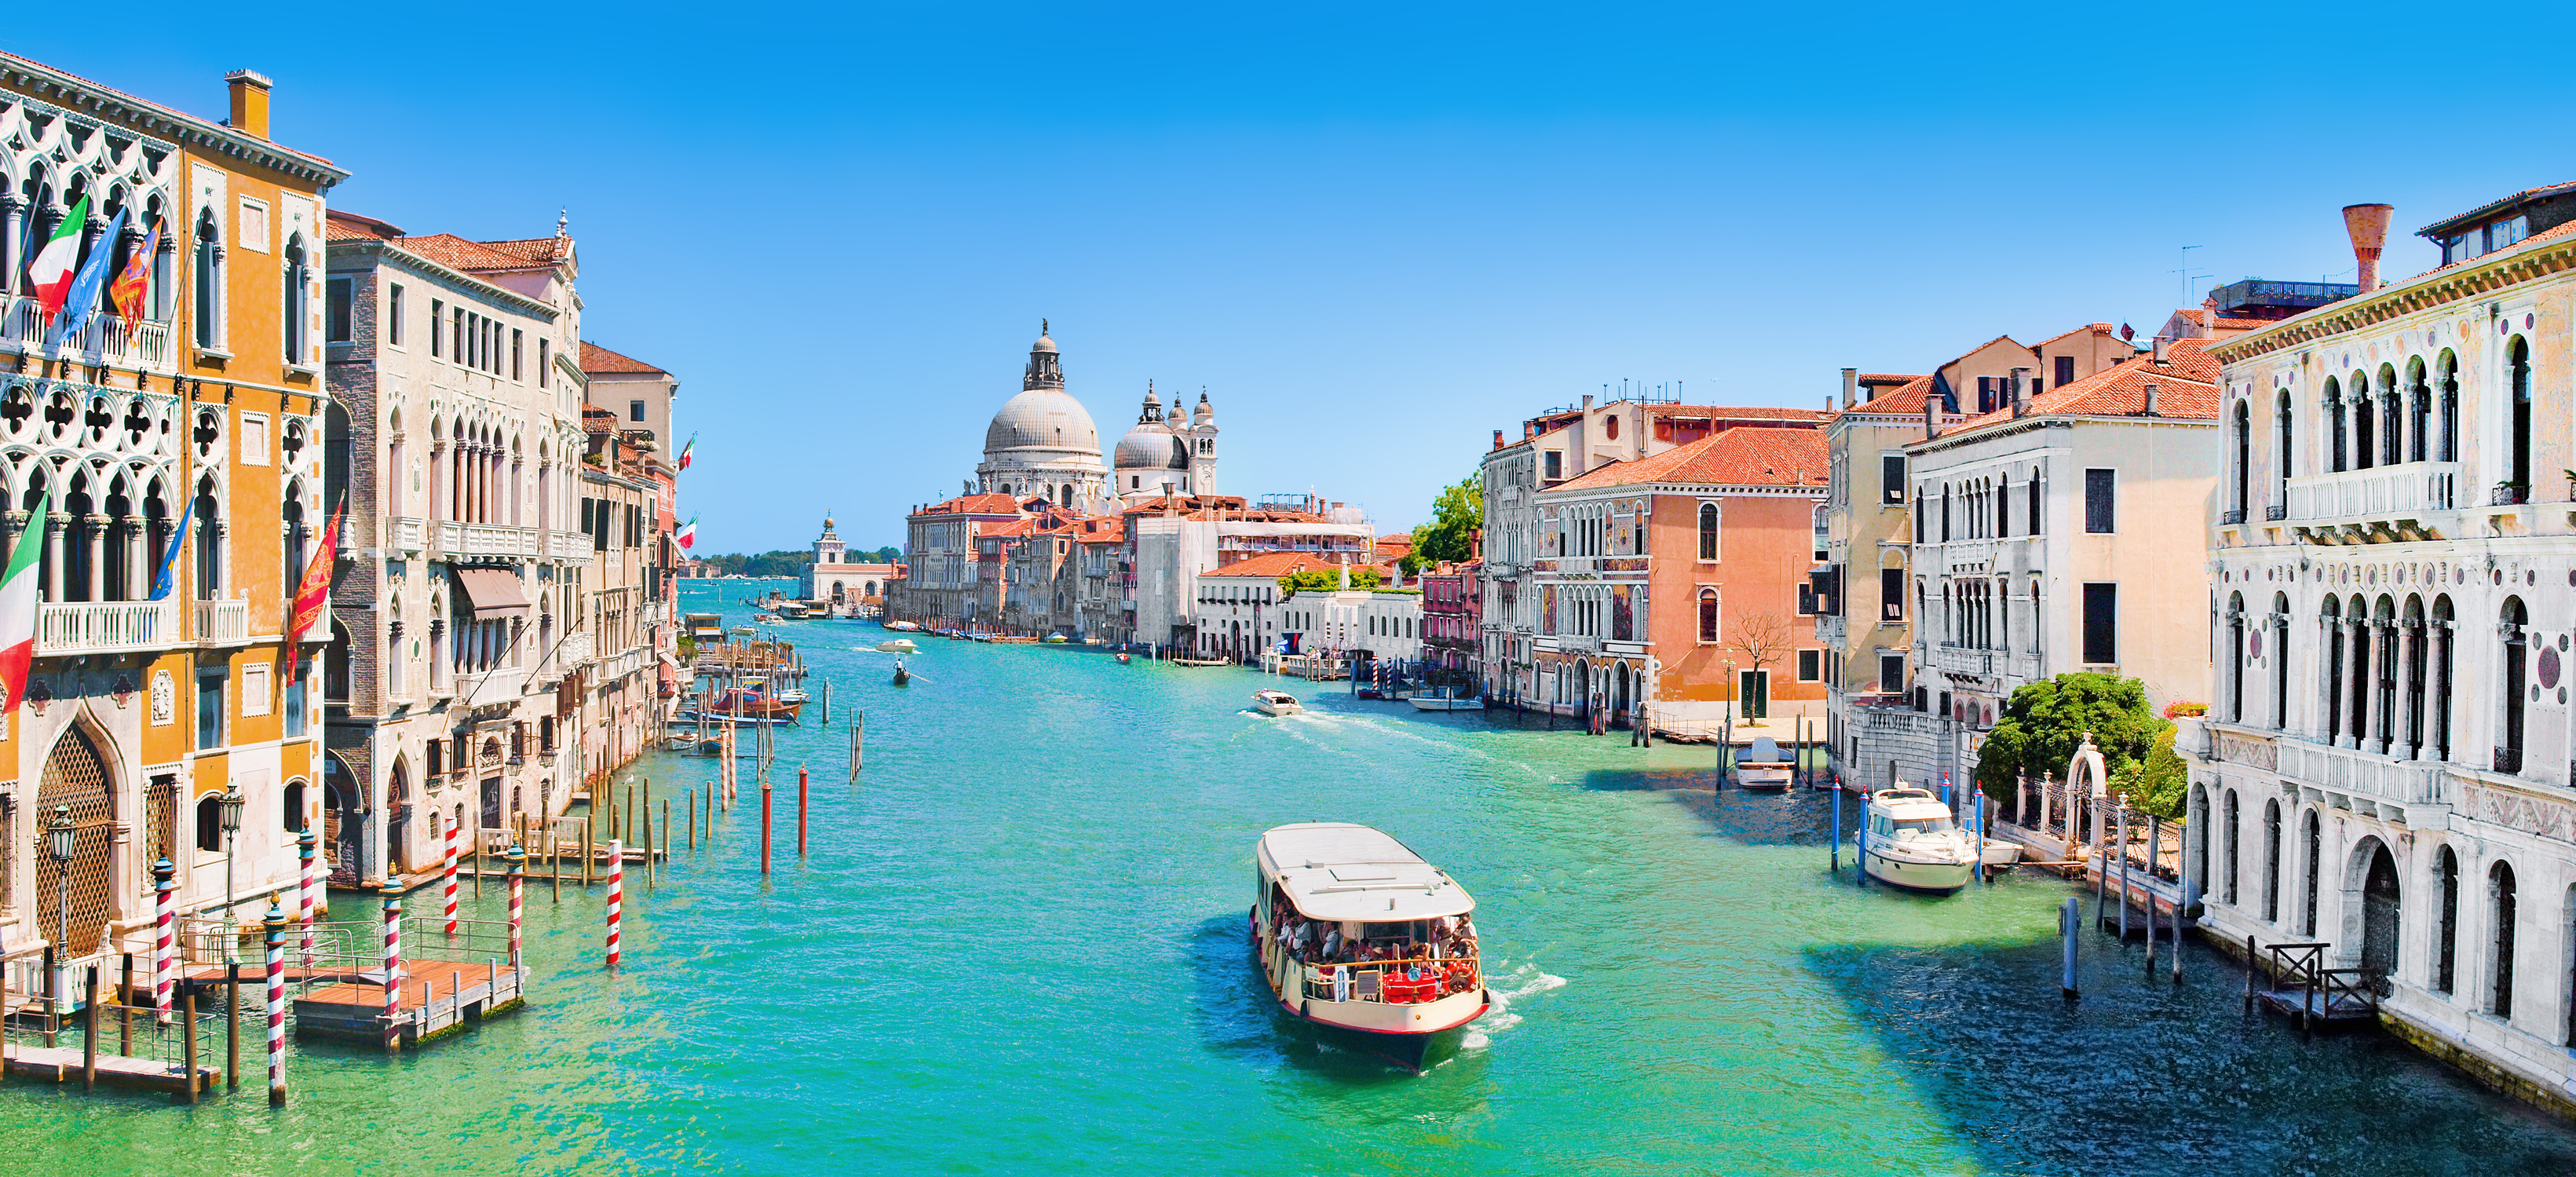 Panoramic view of famous Canal Grande with Basilica Santa Maria della Salute in Venice, Italy (Getty Images/iStock)